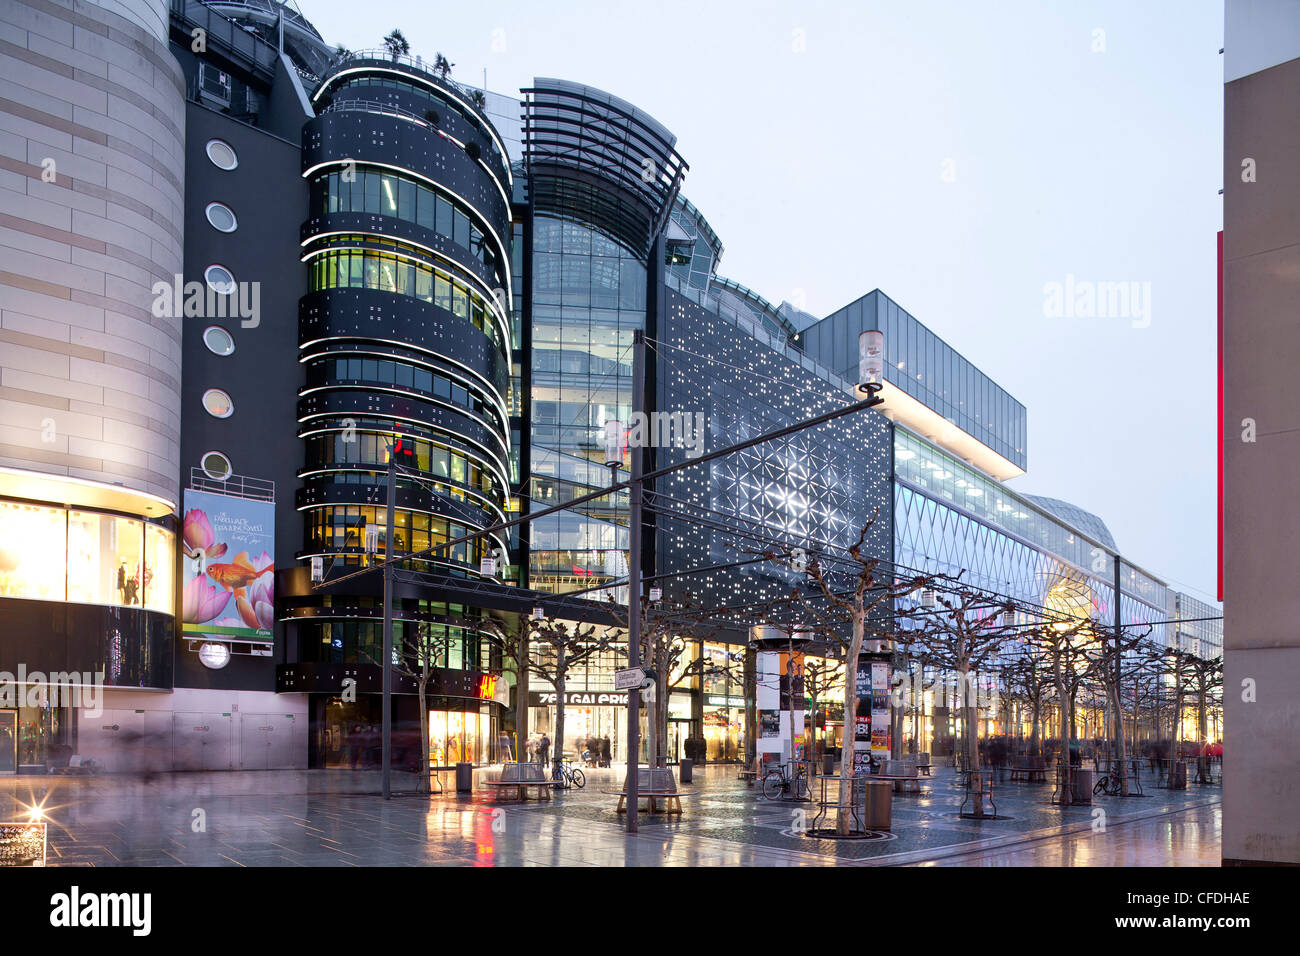 zeilgalerie and myzeil shopping centre in frankfurts city centre stock photo 43939574 alamy. Black Bedroom Furniture Sets. Home Design Ideas